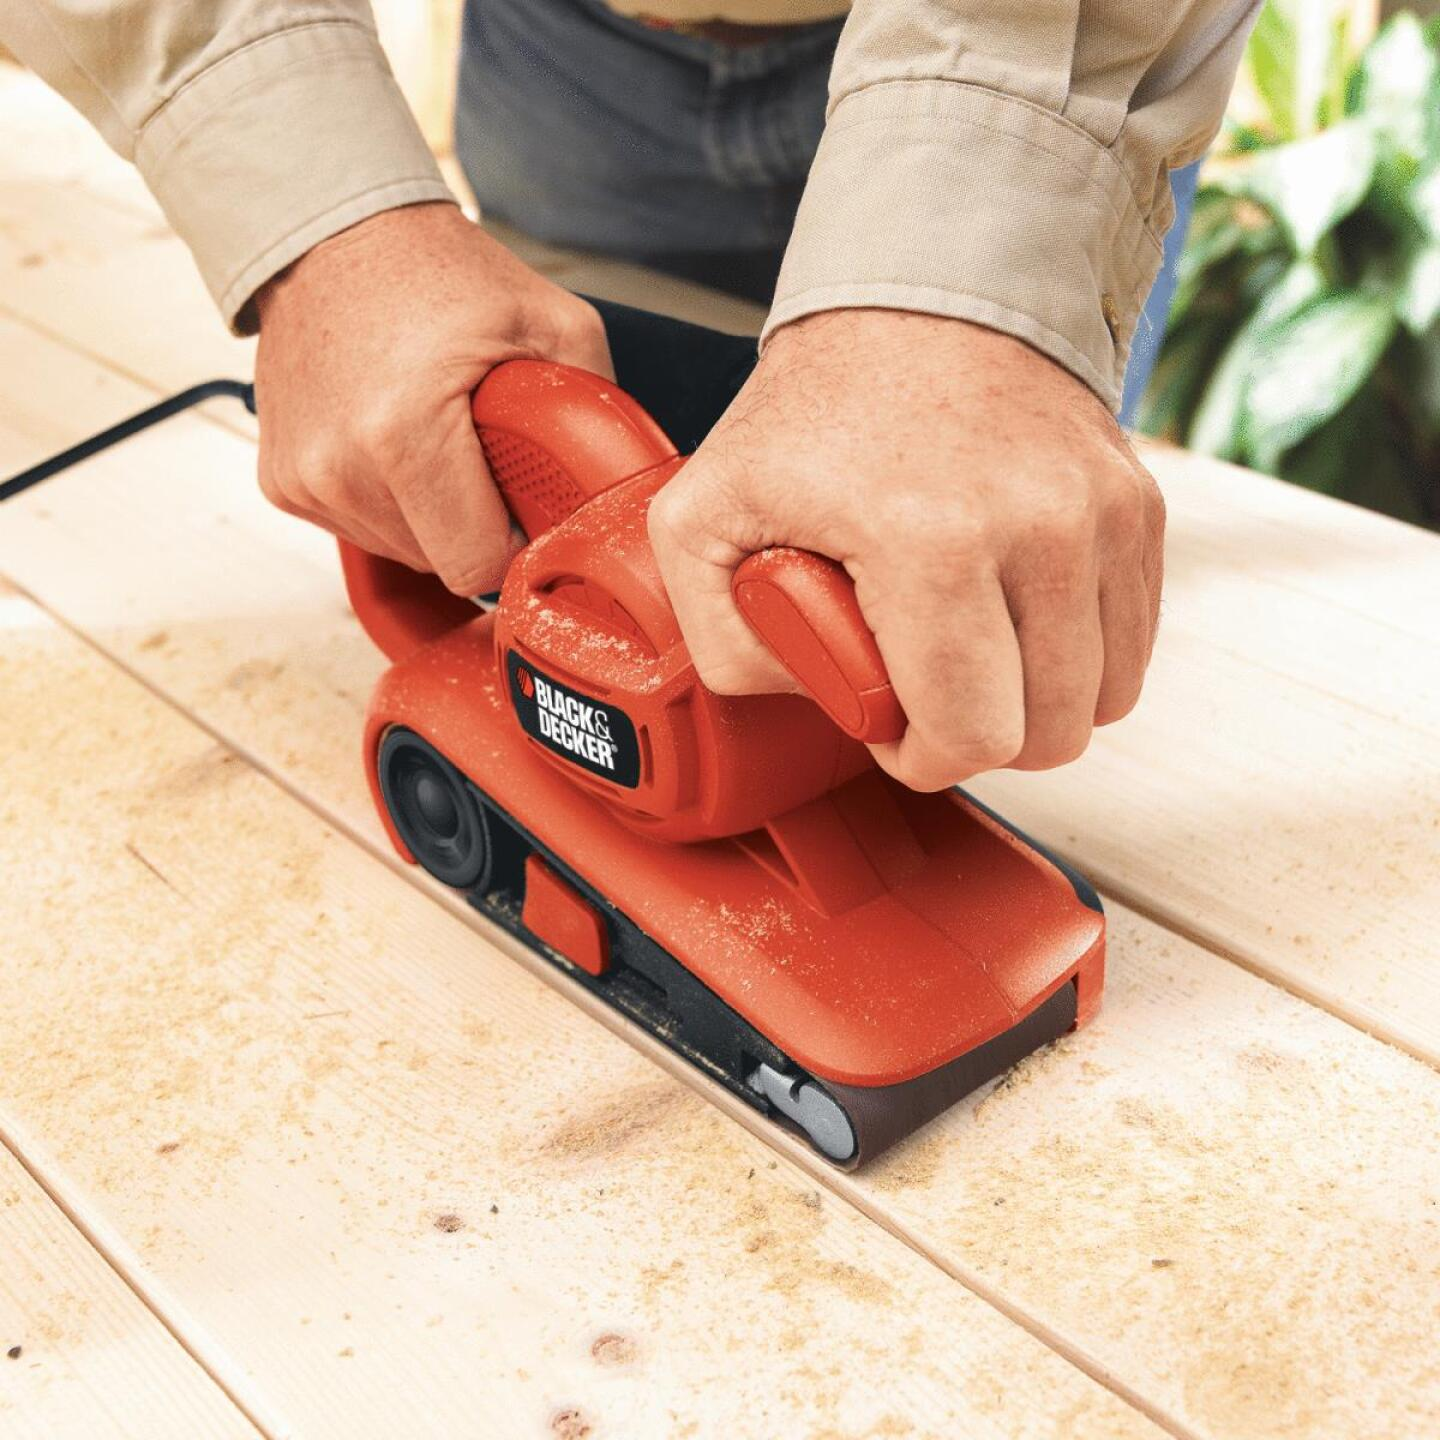 Black & Decker 3 In. x 18 In. Compact Belt Sander Image 4